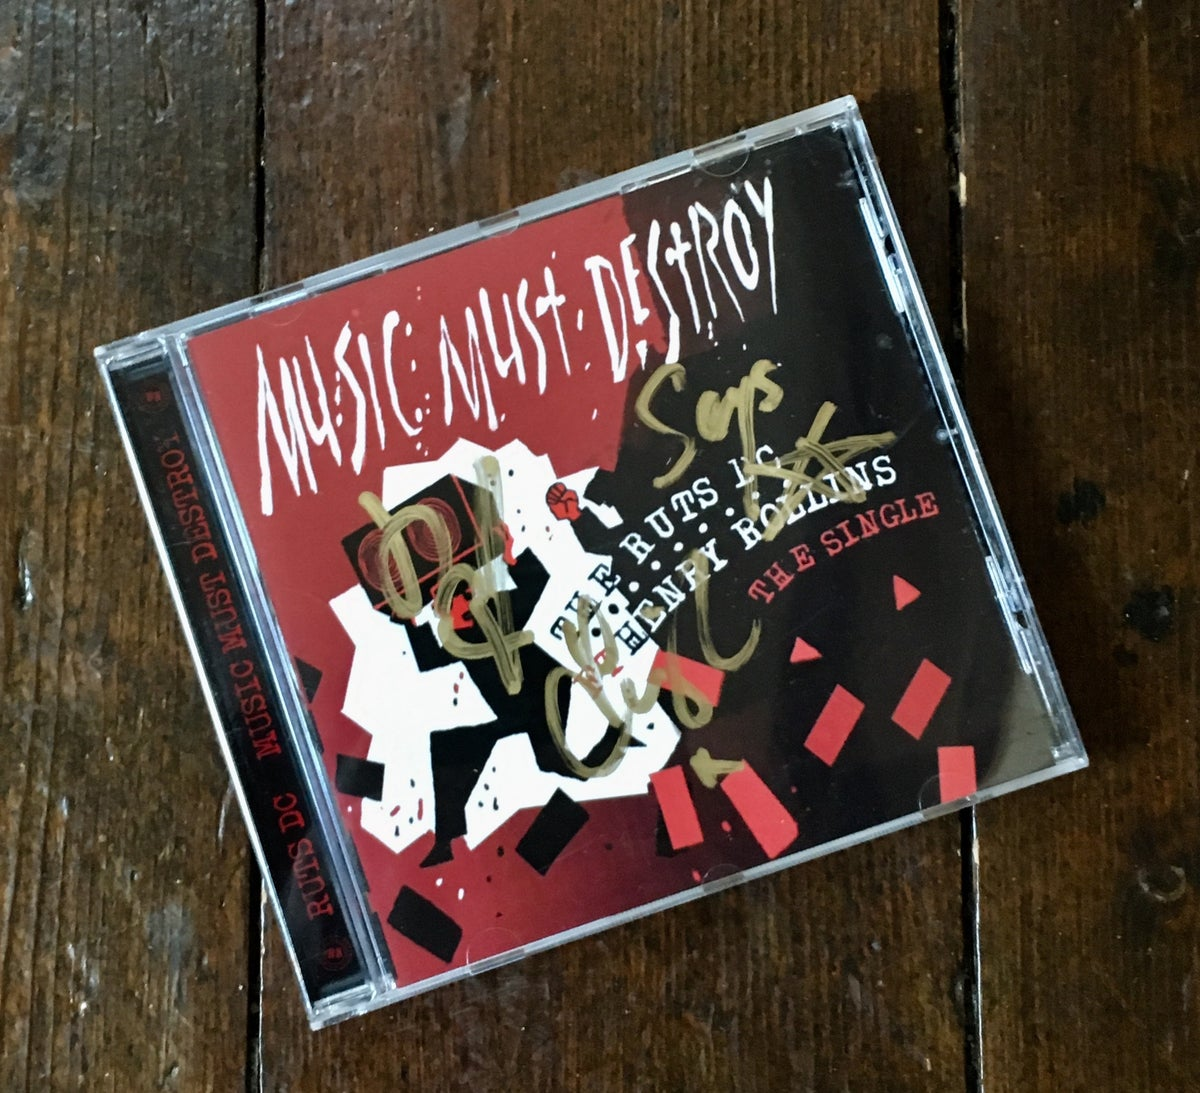 Image of RUTS DC 'Music Must Destroy' CD Single